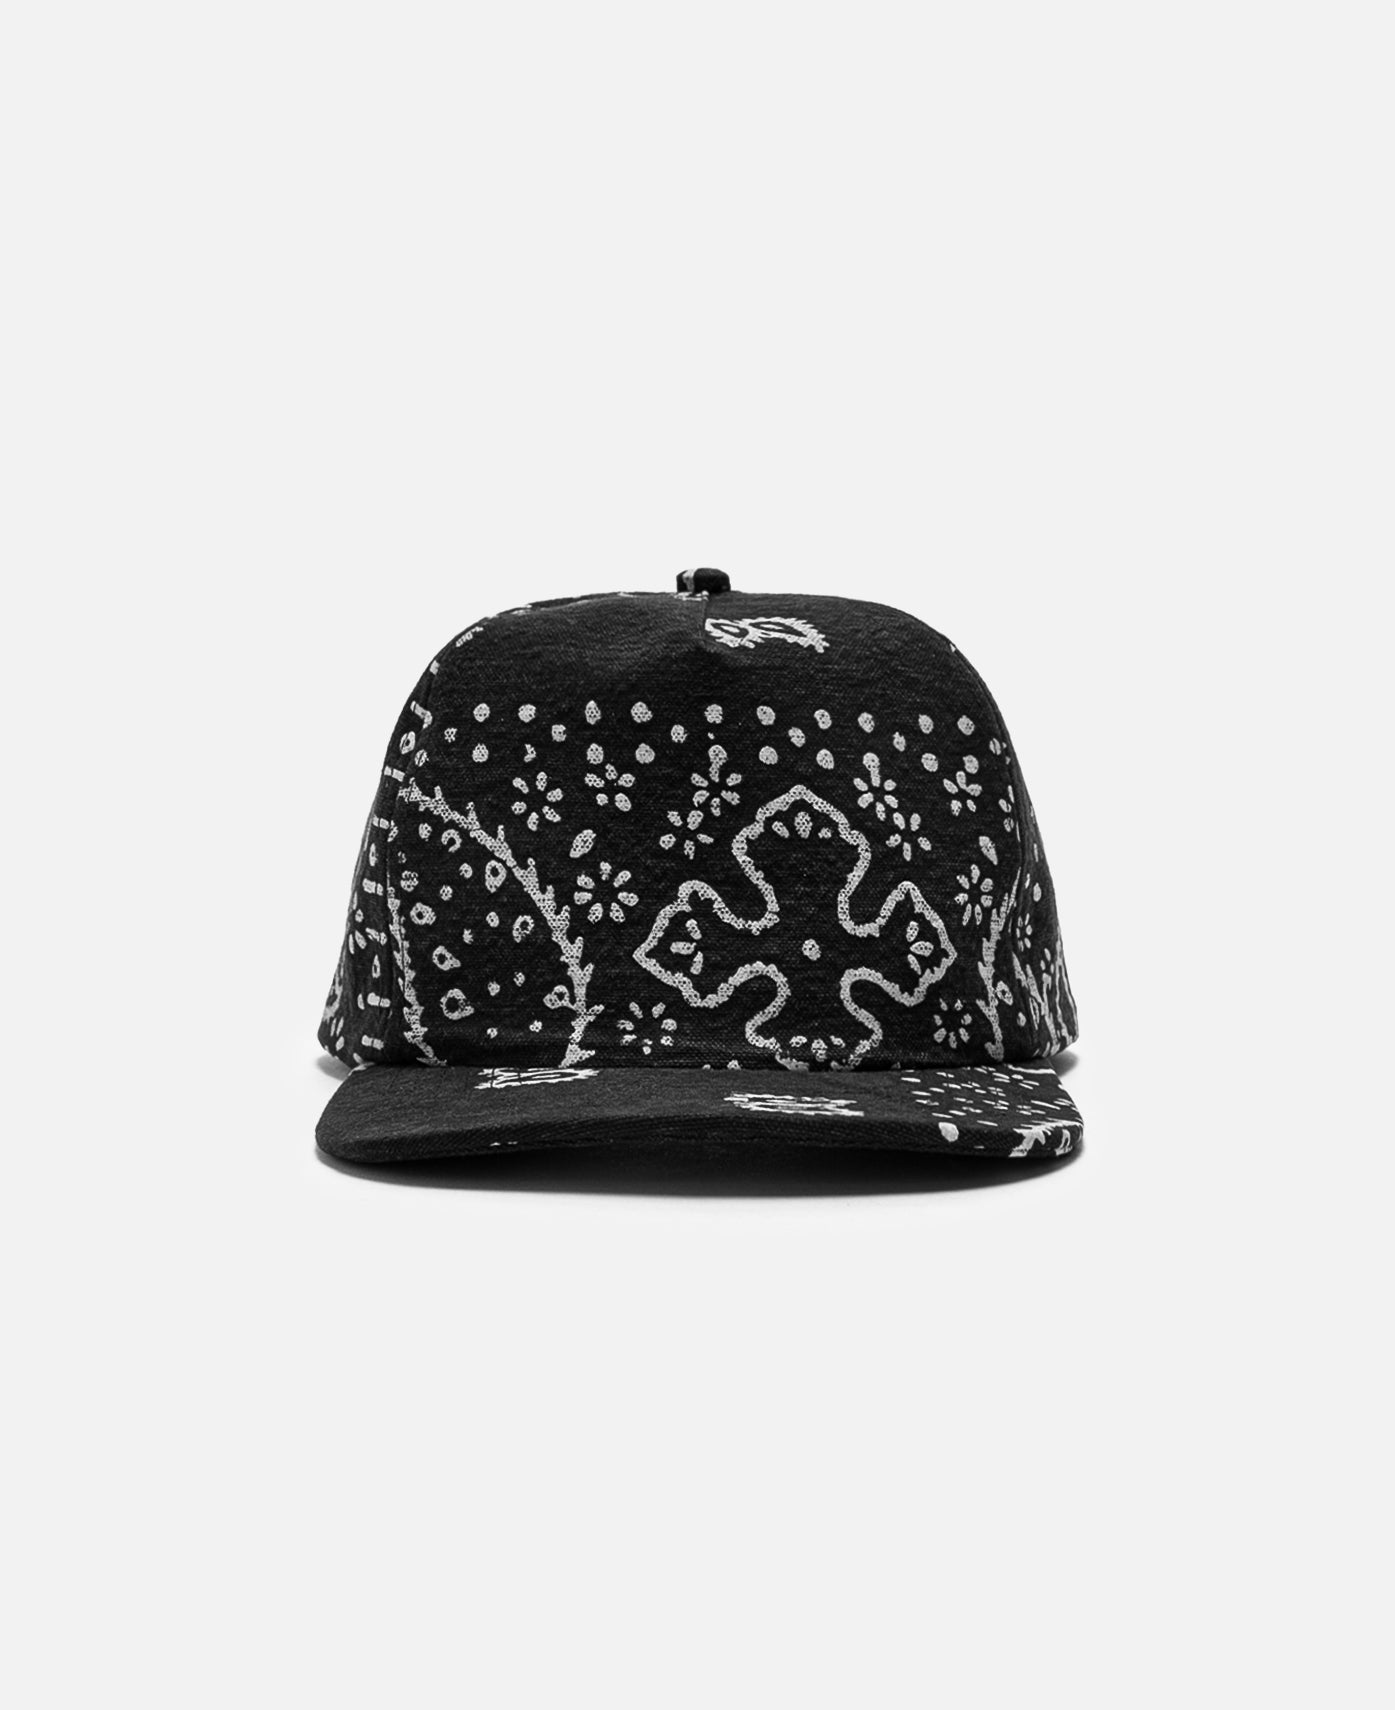 Rhepurposed Hat (Black)